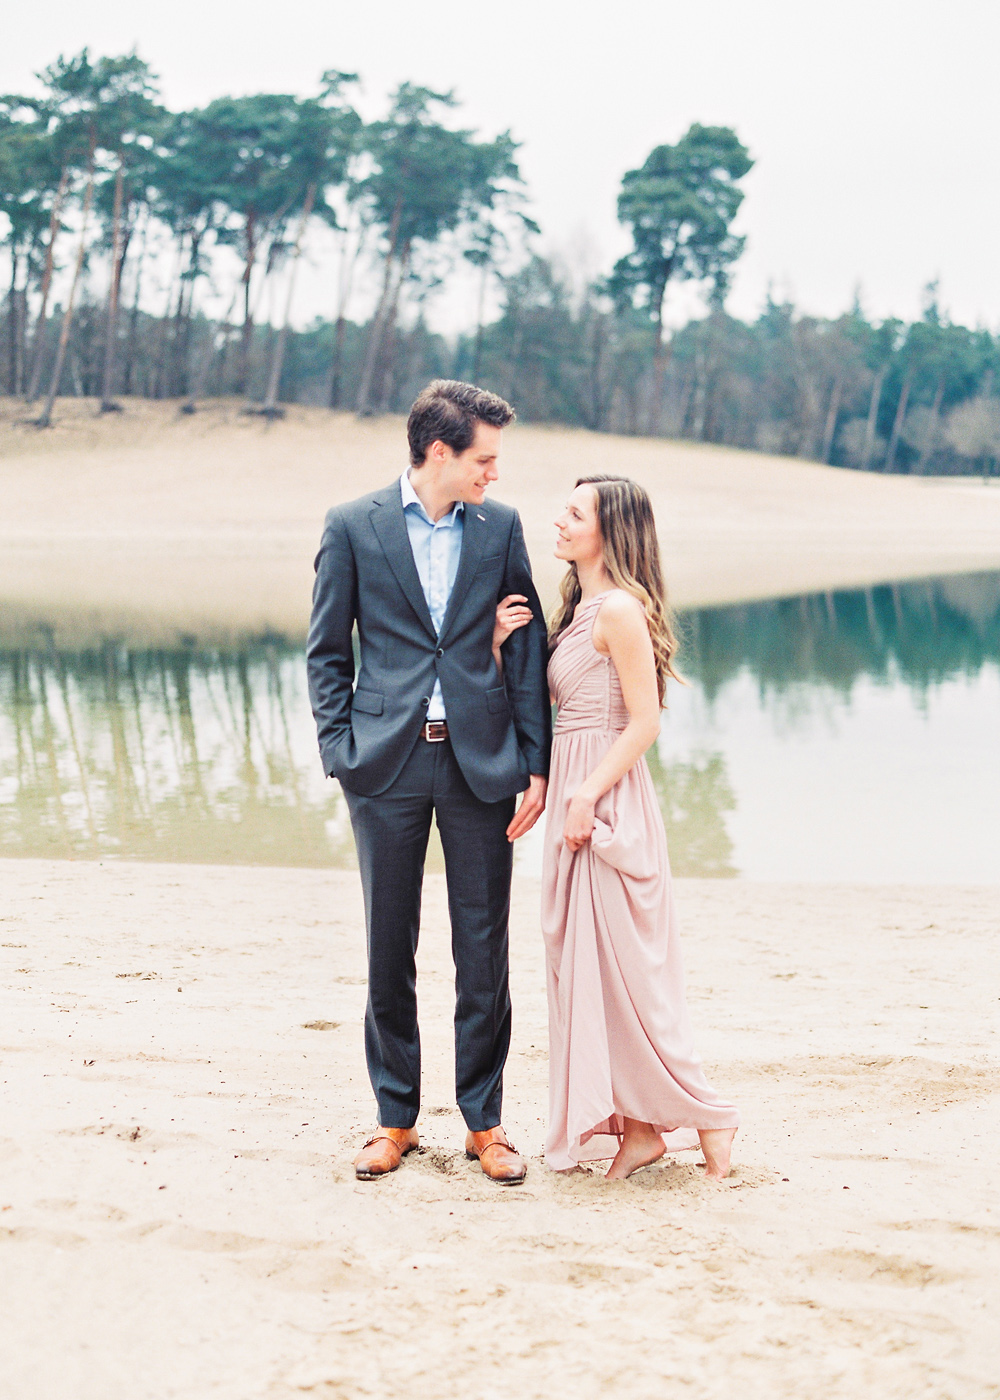 alexandra vonk photography, the netherlands anniversary session, fine art marriage